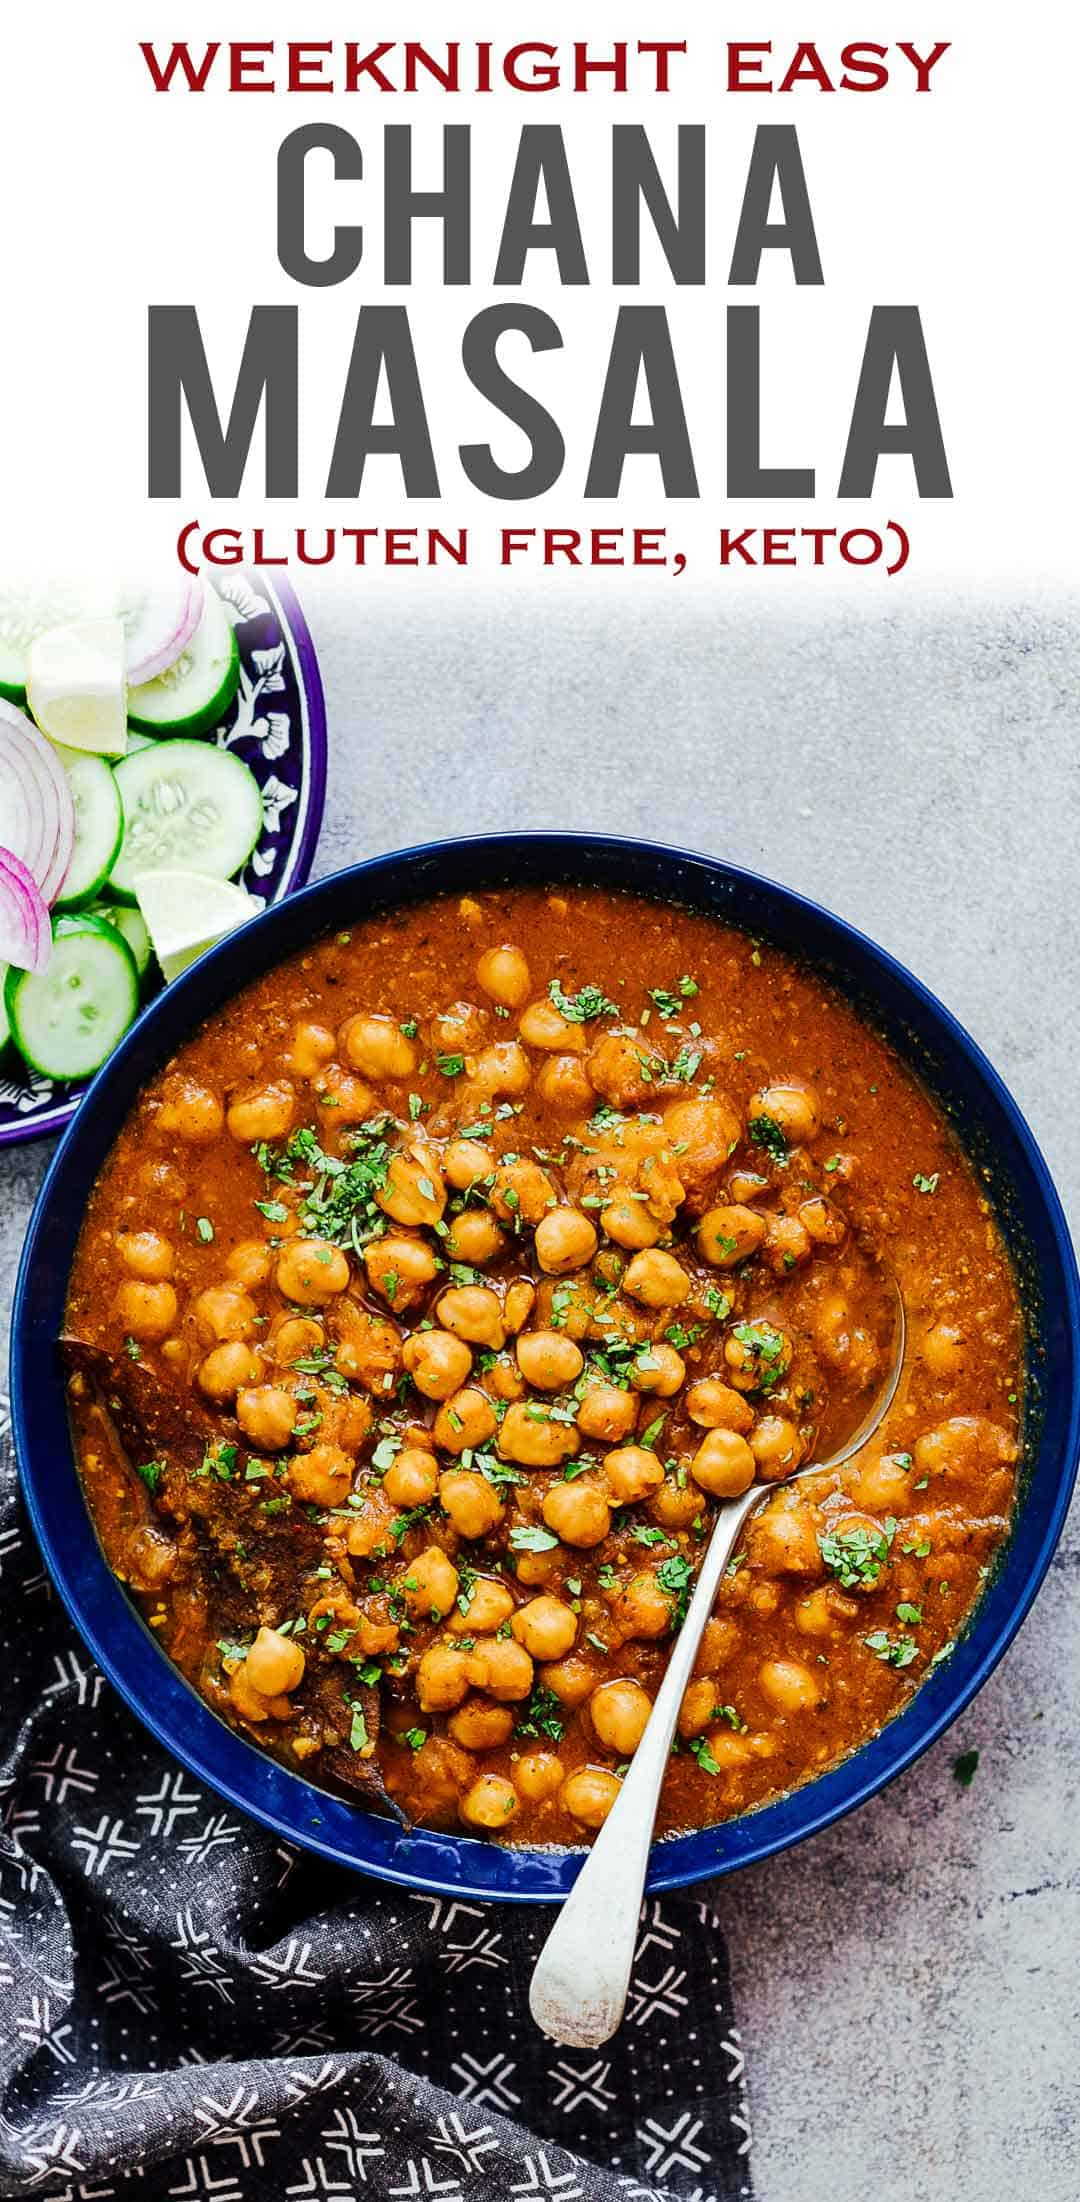 Love Indian food? Chana Masala or chhole masala is an easy and incredibly tasty chickpeas and potato curry. Its got a punch of flavour from the spices, and this recipe has instructions for instant pot, traditional pressure cooker and stovetop. The best part is that apart from being healthy, its vegan and gluten free. #indian #recipe #dinner #weeknight #vegan #fast